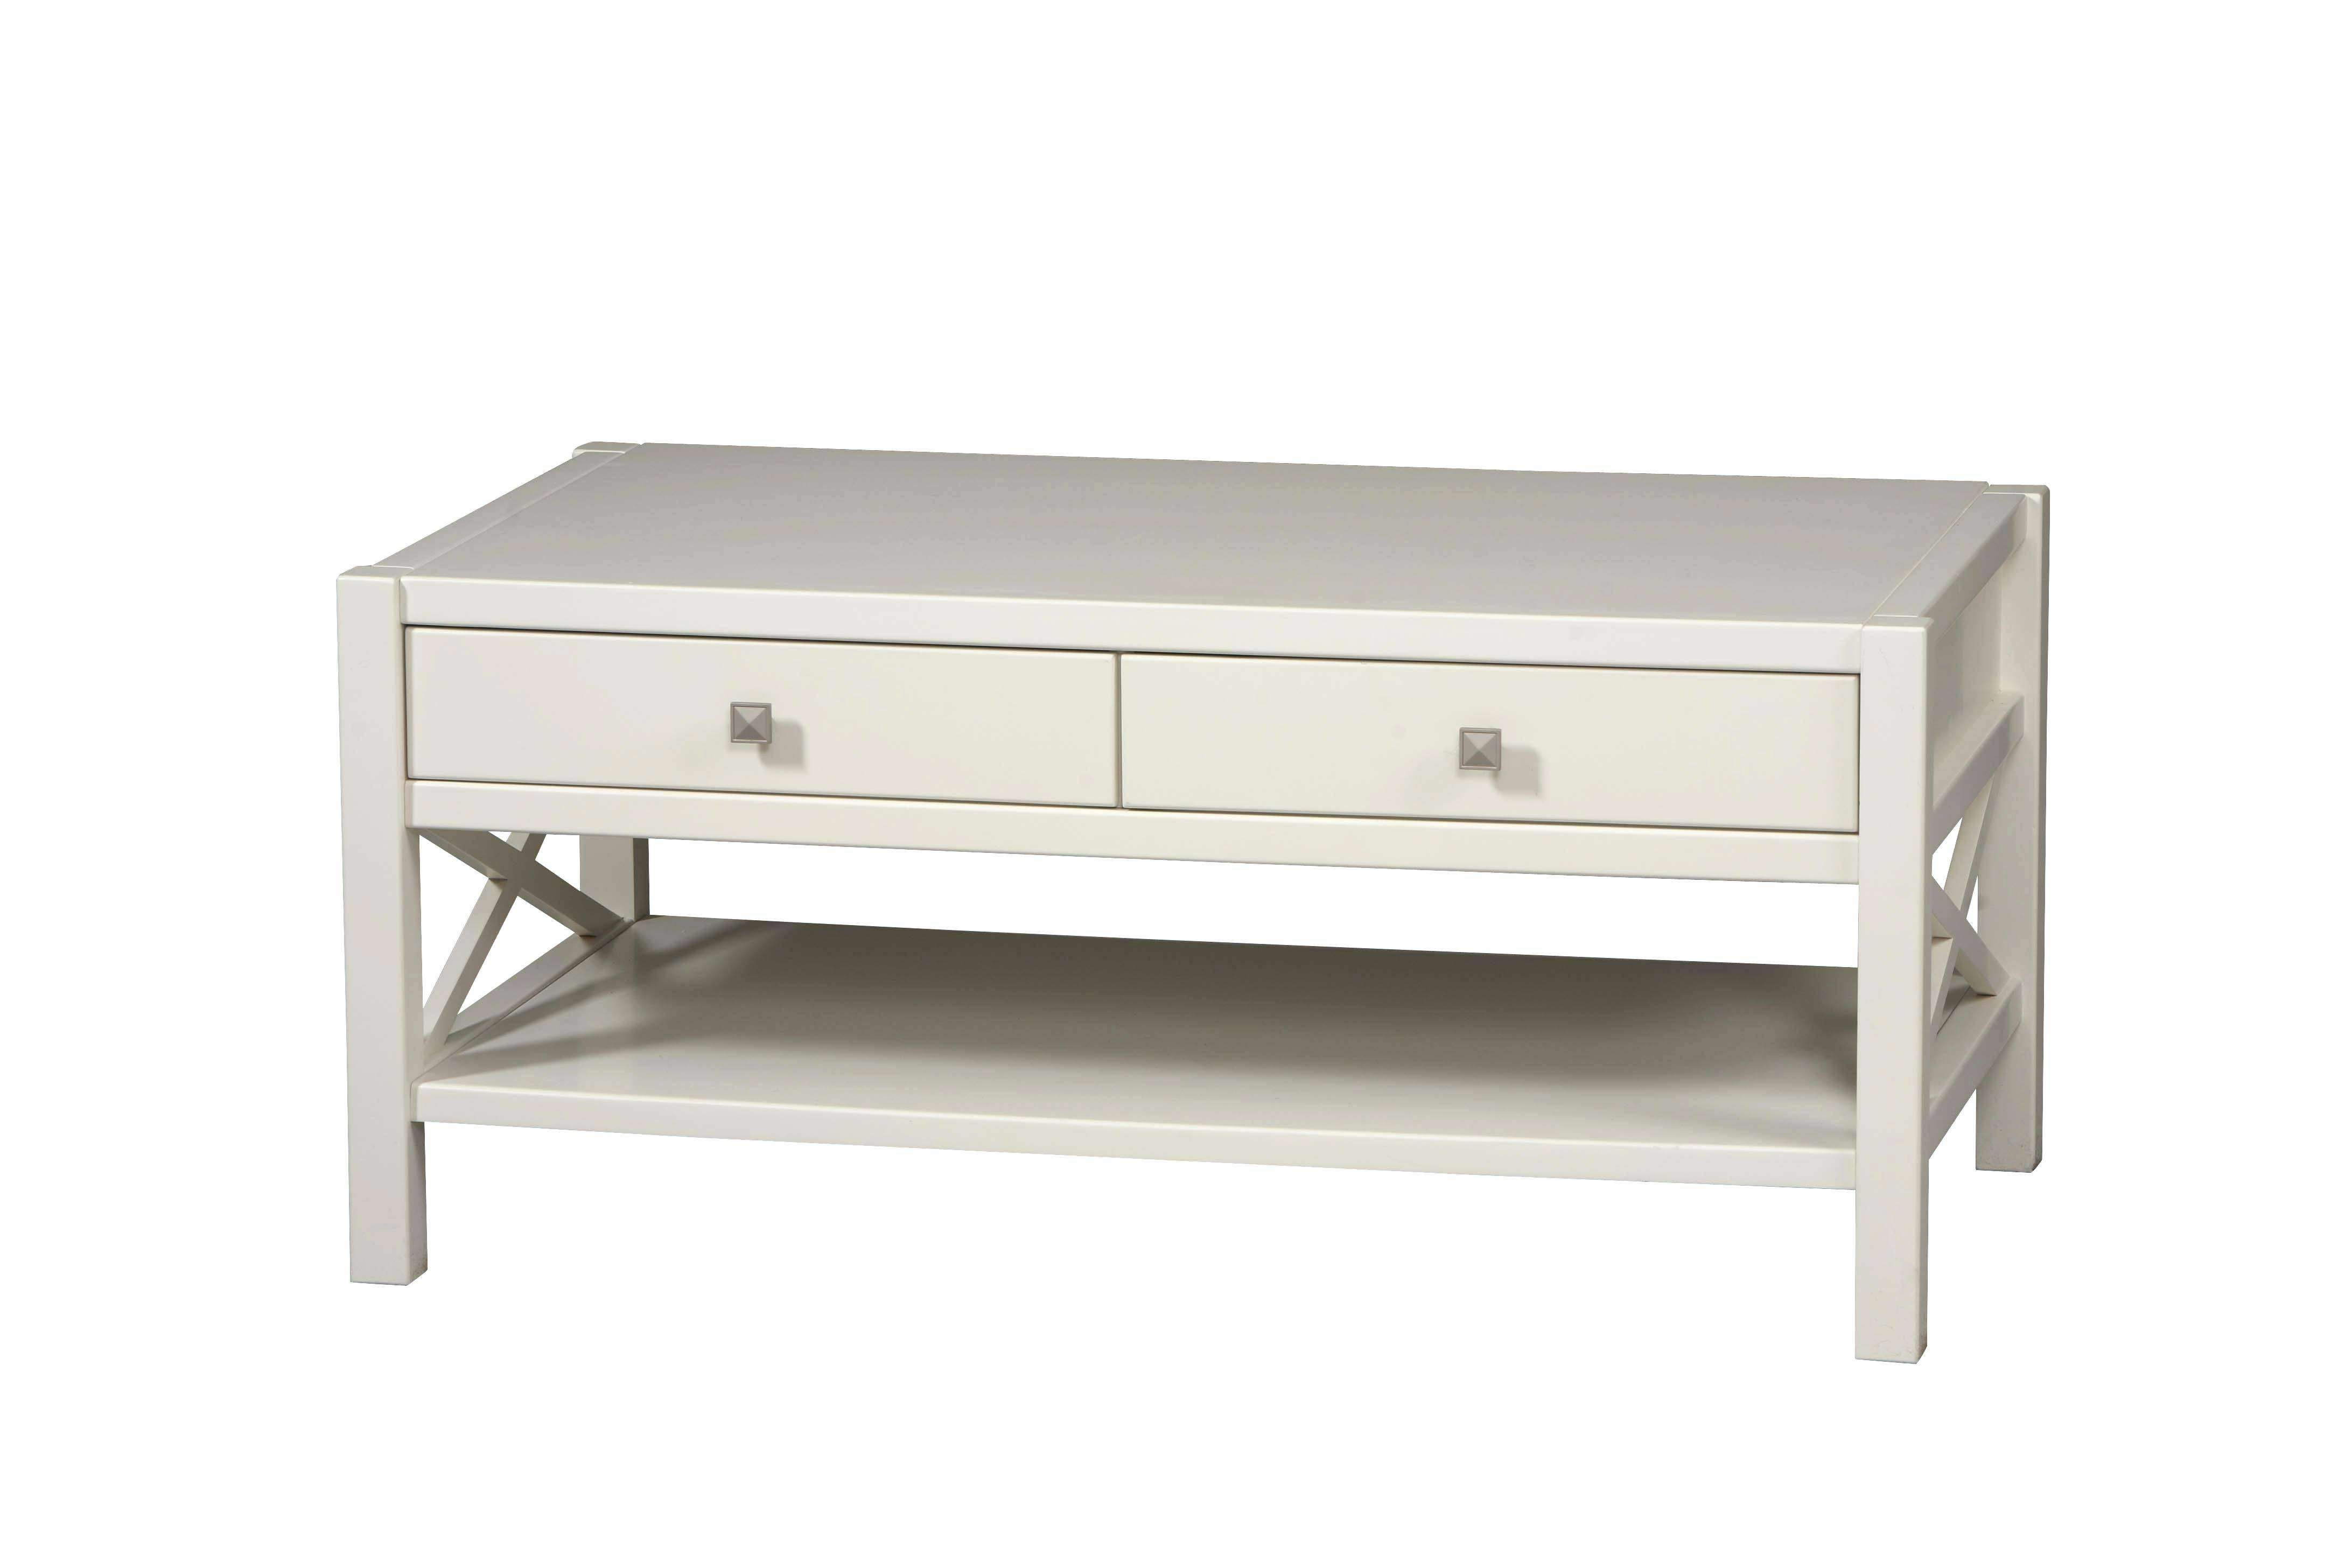 Coffee Tables : Small Square Coffee Table With Storage Narrow Within Widely Used Narrow Coffee Tables (View 13 of 20)